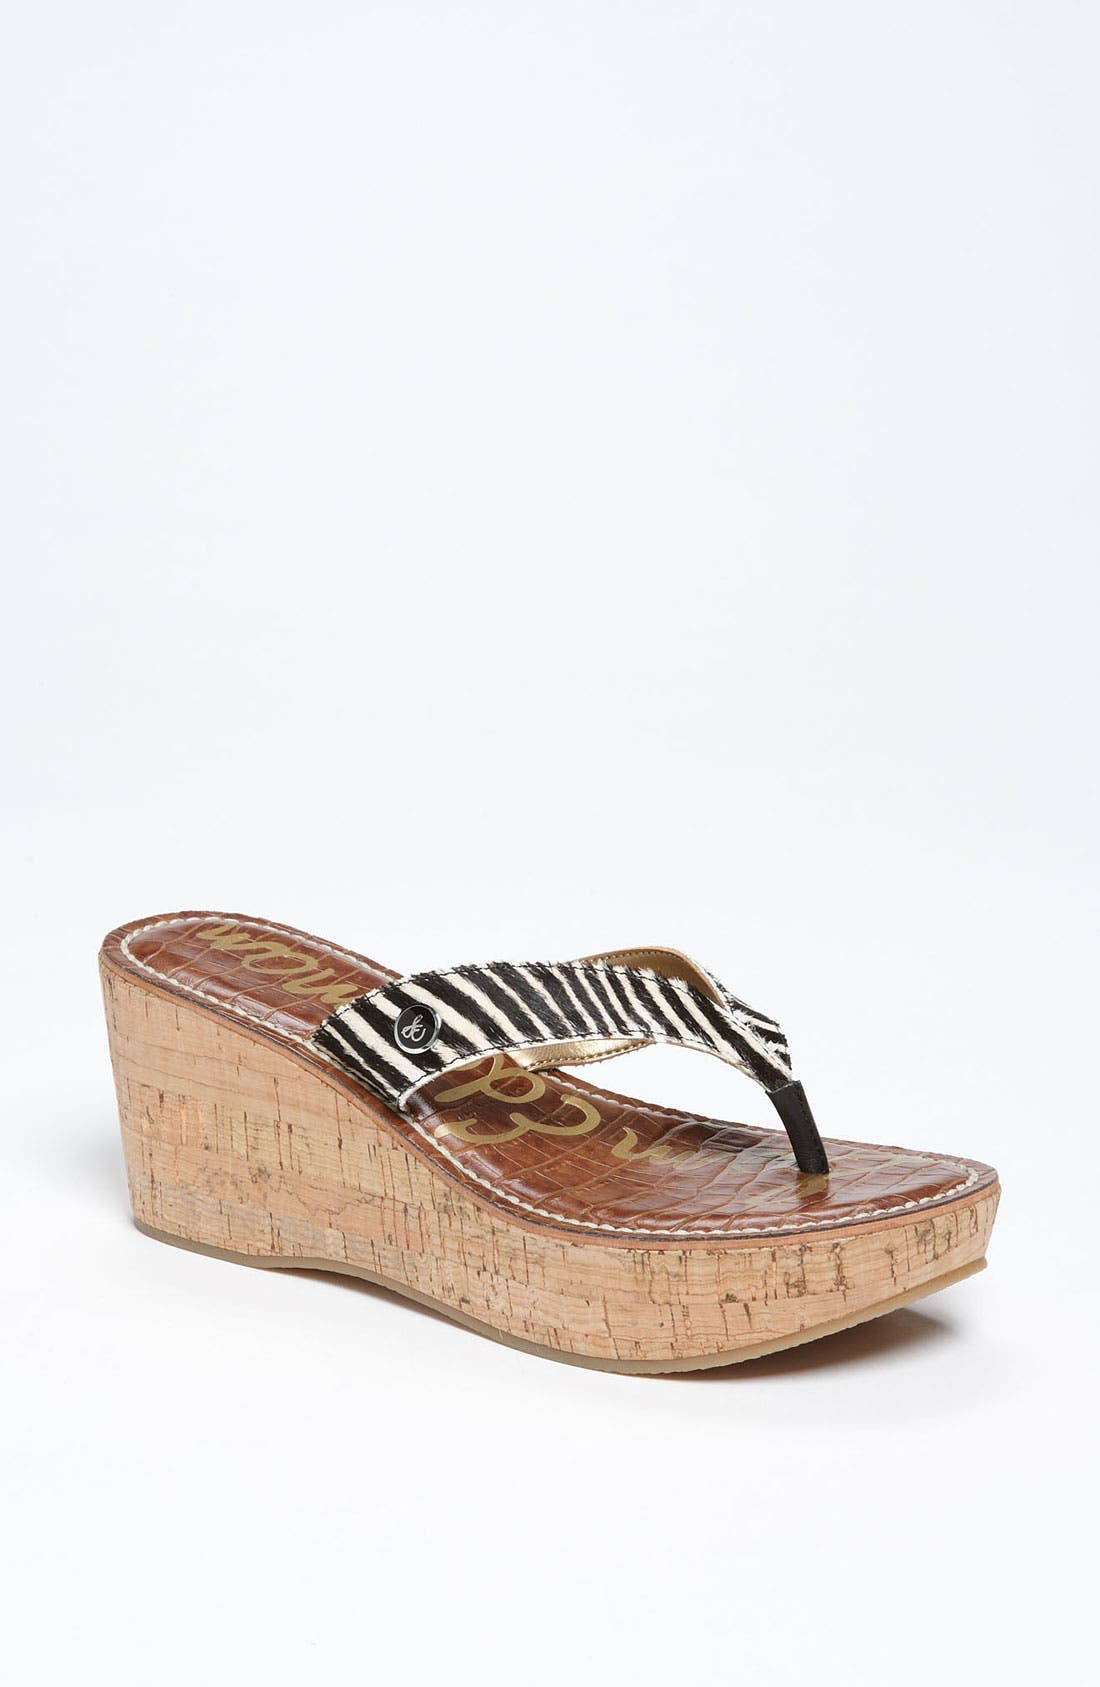 Alternate Image 1 Selected - Sam Edelman 'Romy' Wedge Sandal